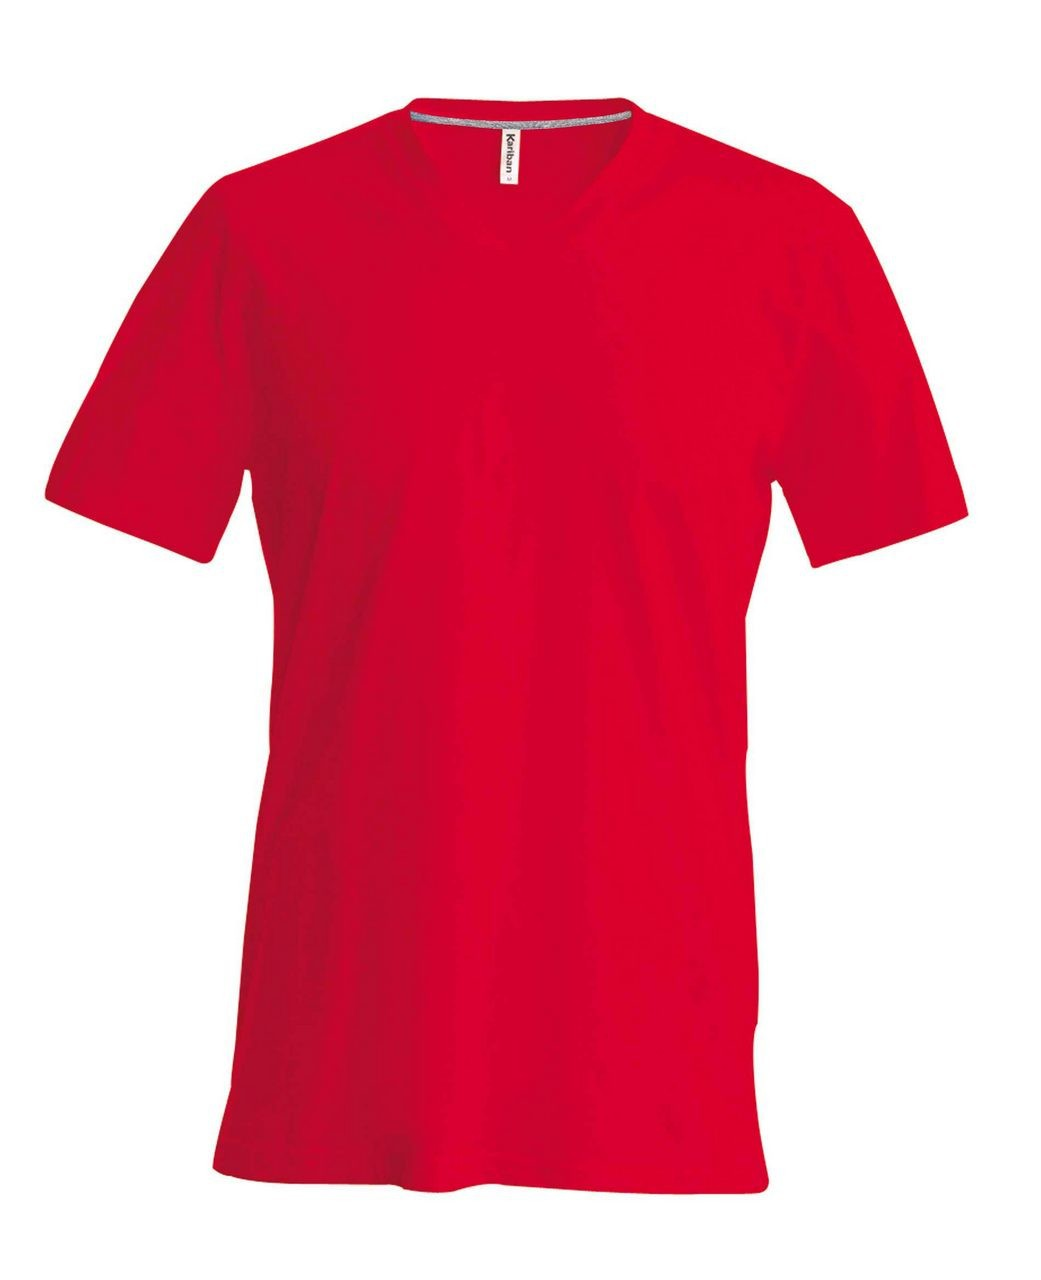 af87324a6a Kariban V-neck T-shirt, Red, S (T-shirt, 90-100% cotton ...